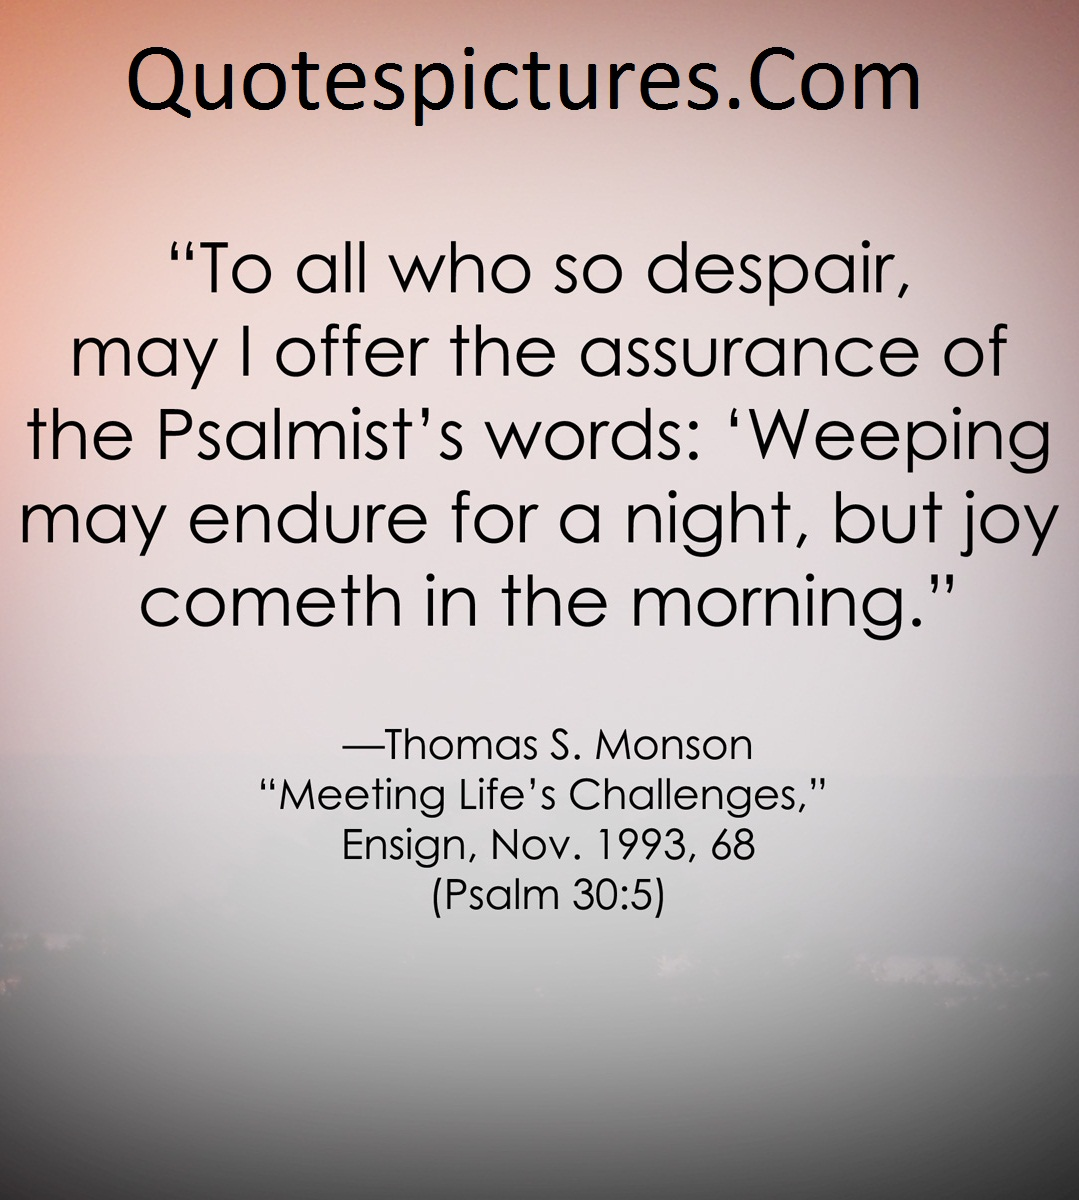 Adversity Quotes  - Weeping May Endure For A Night, But Joy Cometh In The Morning By Thomas S. Monson